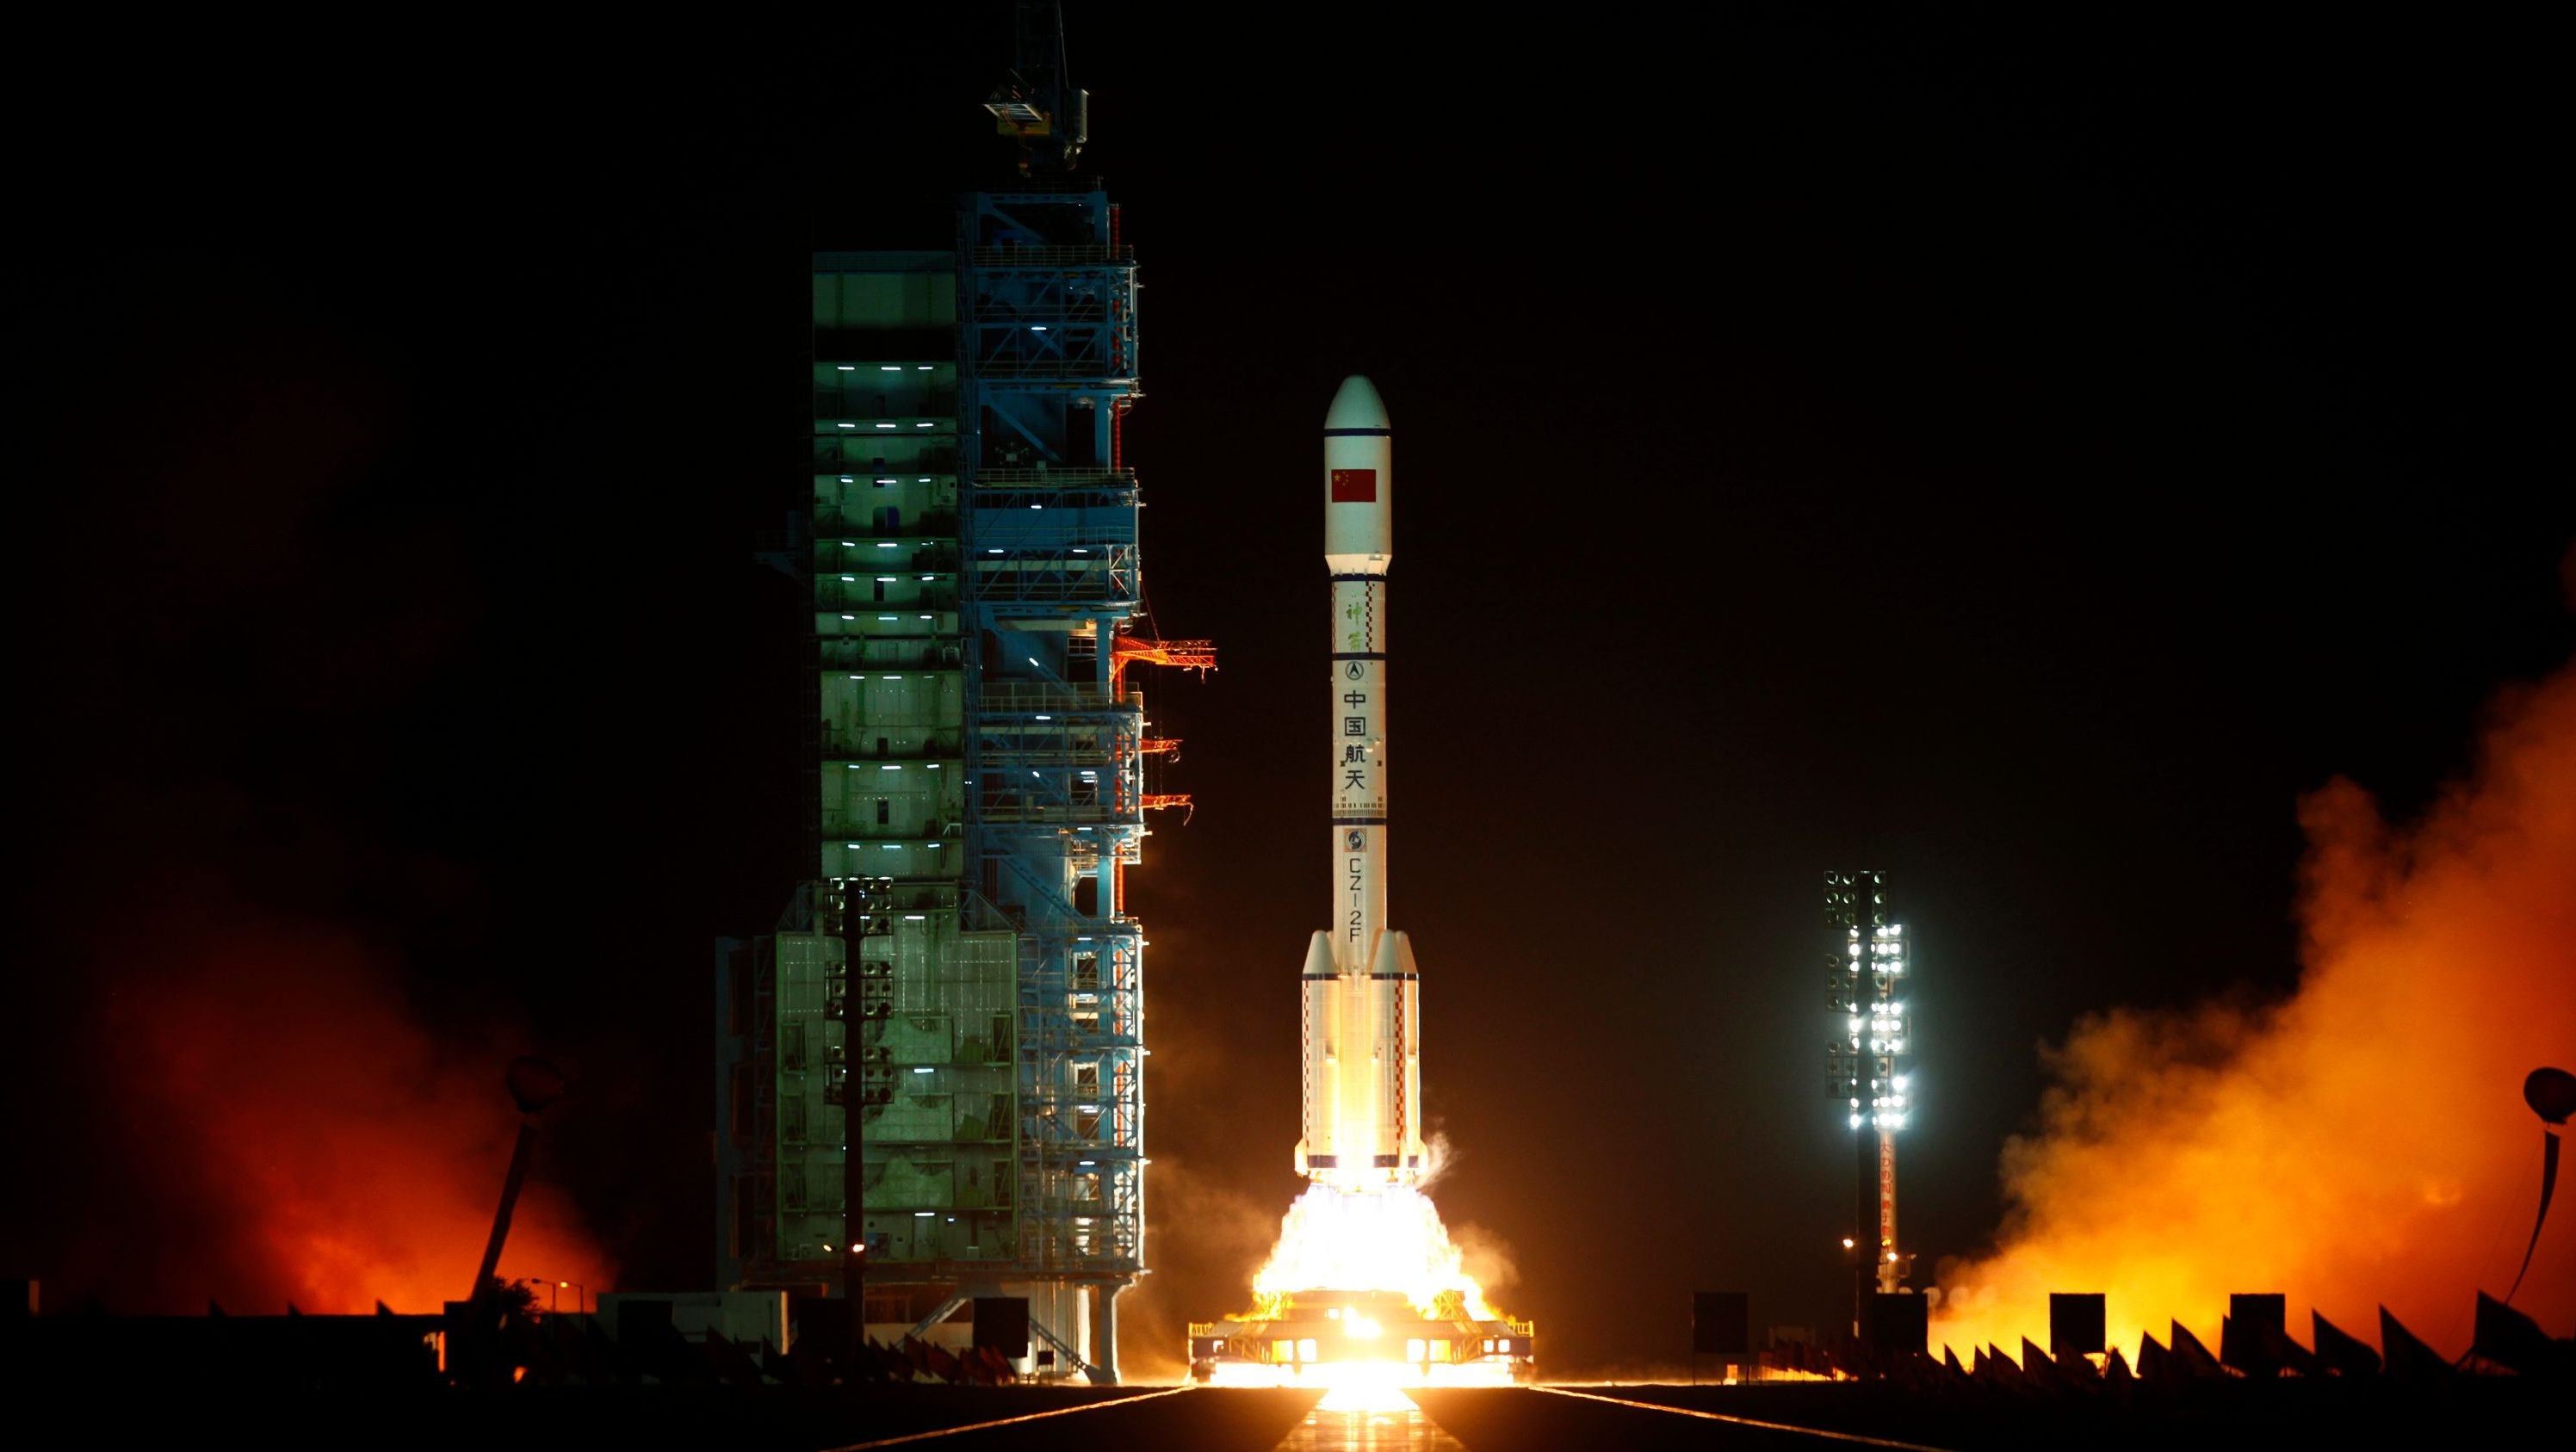 The Long March II-F rocket loaded with China's unmanned space module Tiangong-1 lifts off from the launch pad i